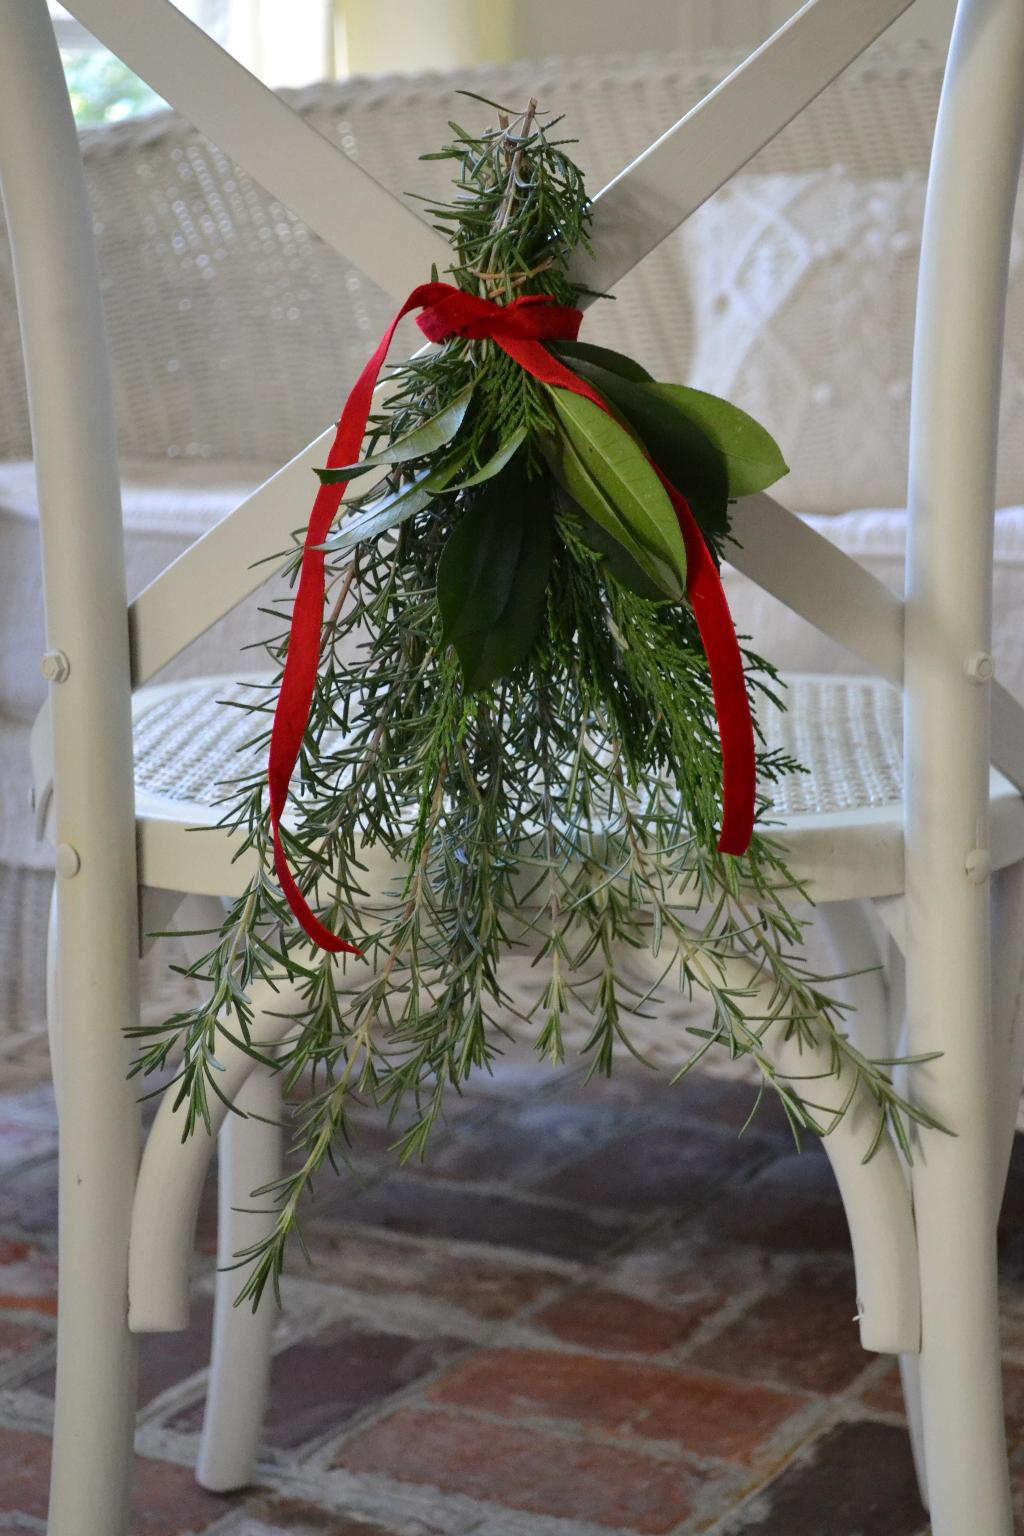 Cottage Fix - Christmas chair swag made of fresh greenery from the garden